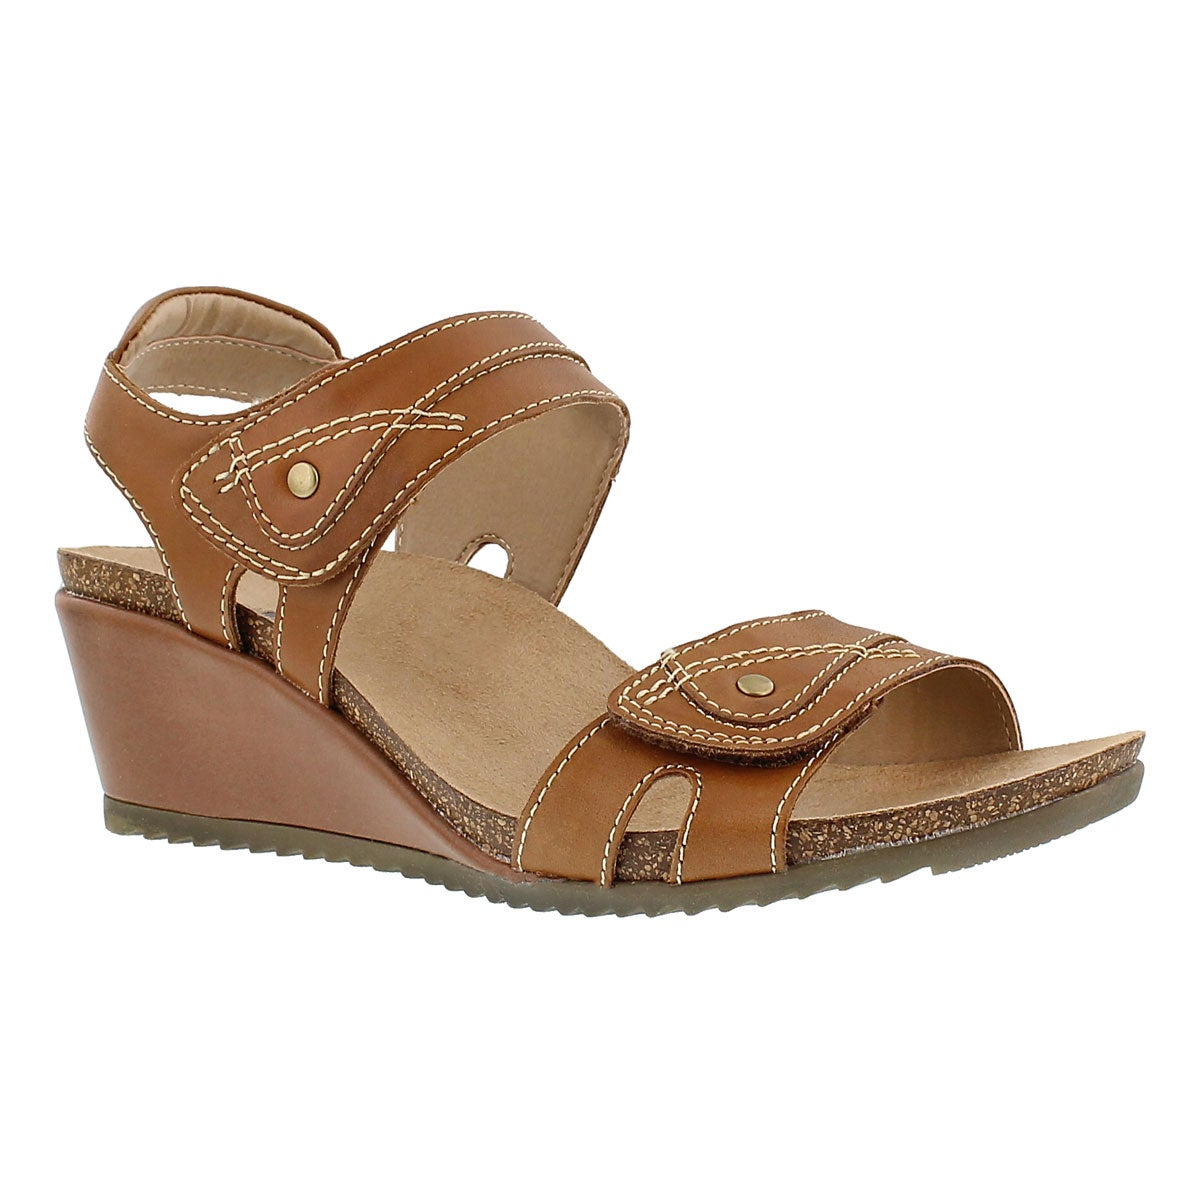 Women's KEIRA brown wedge sandals